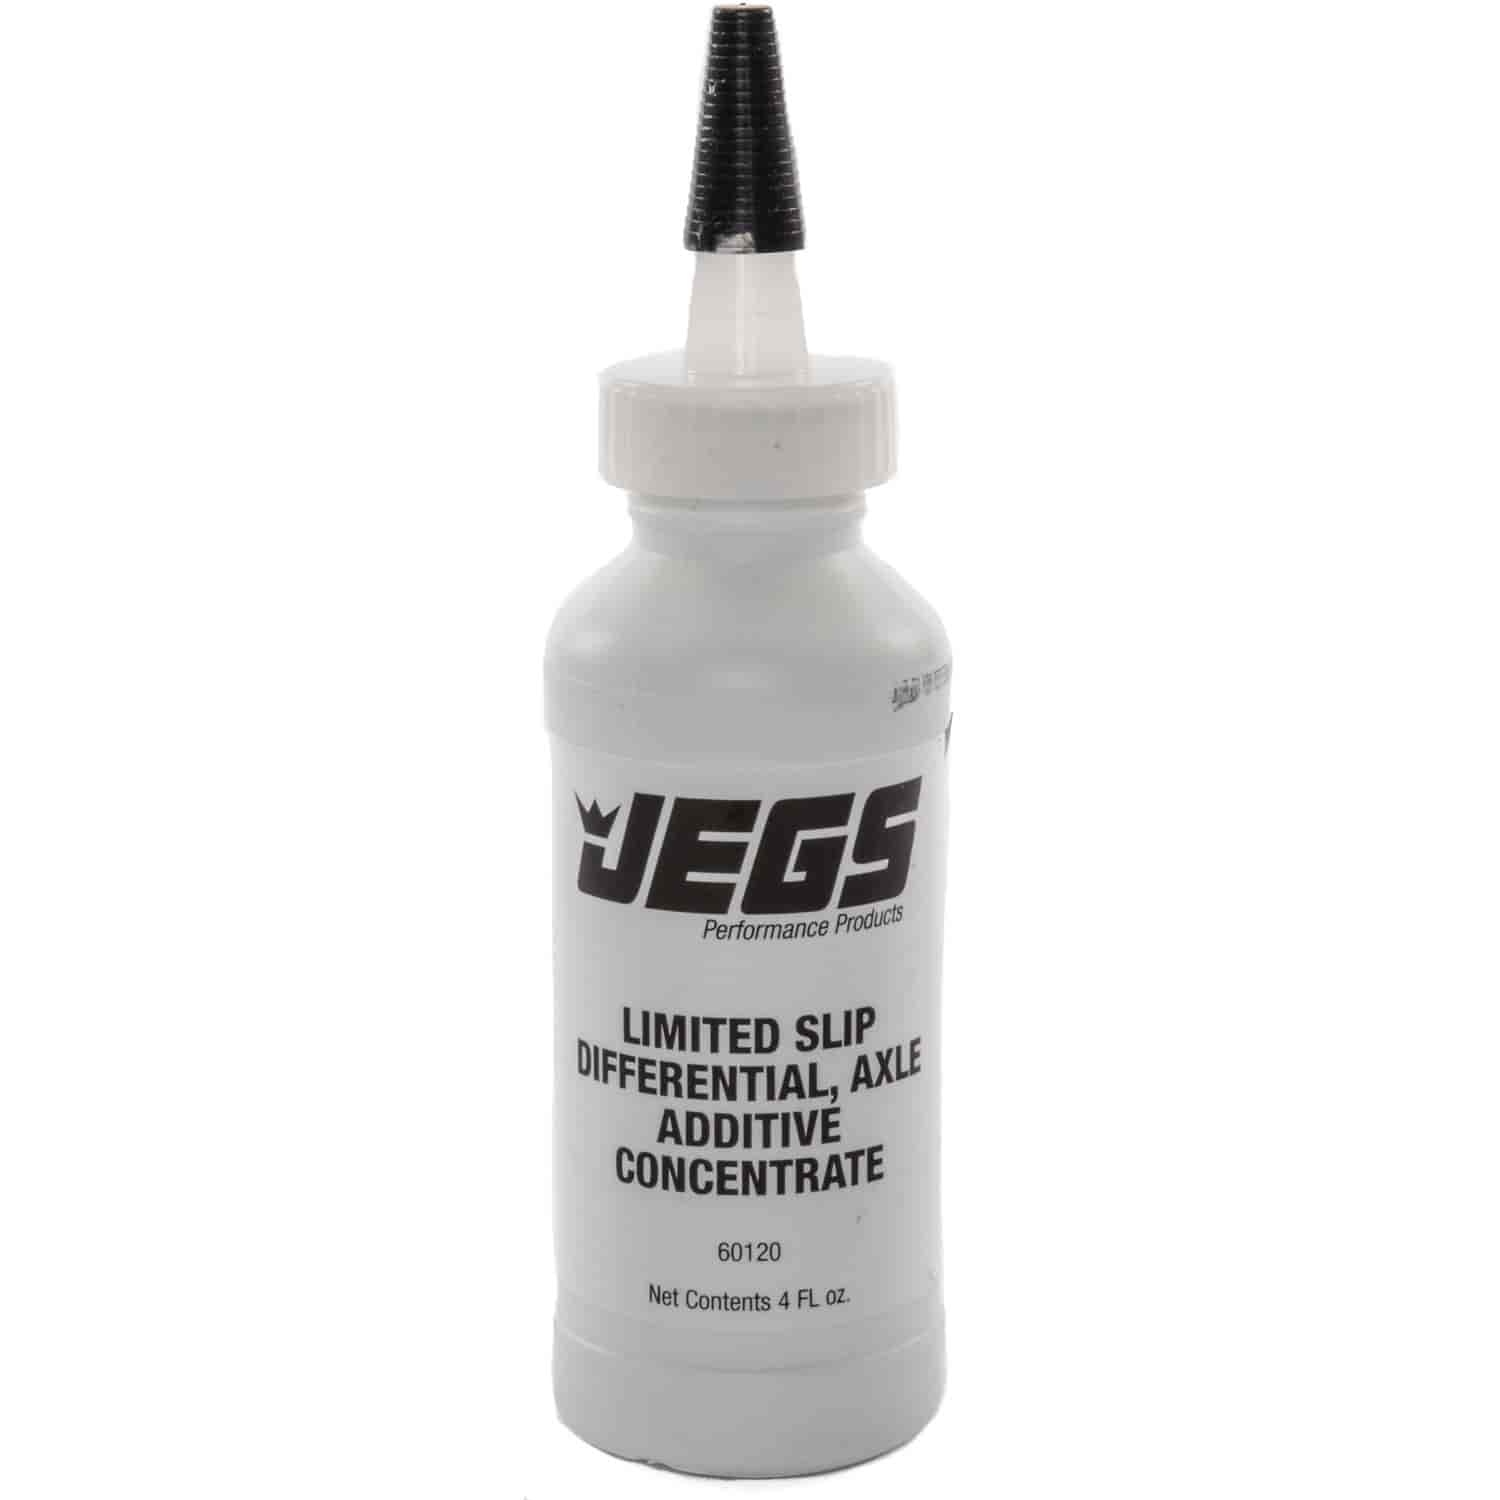 JEGS Performance Products 60120 - JEGS Limited Slip Additive